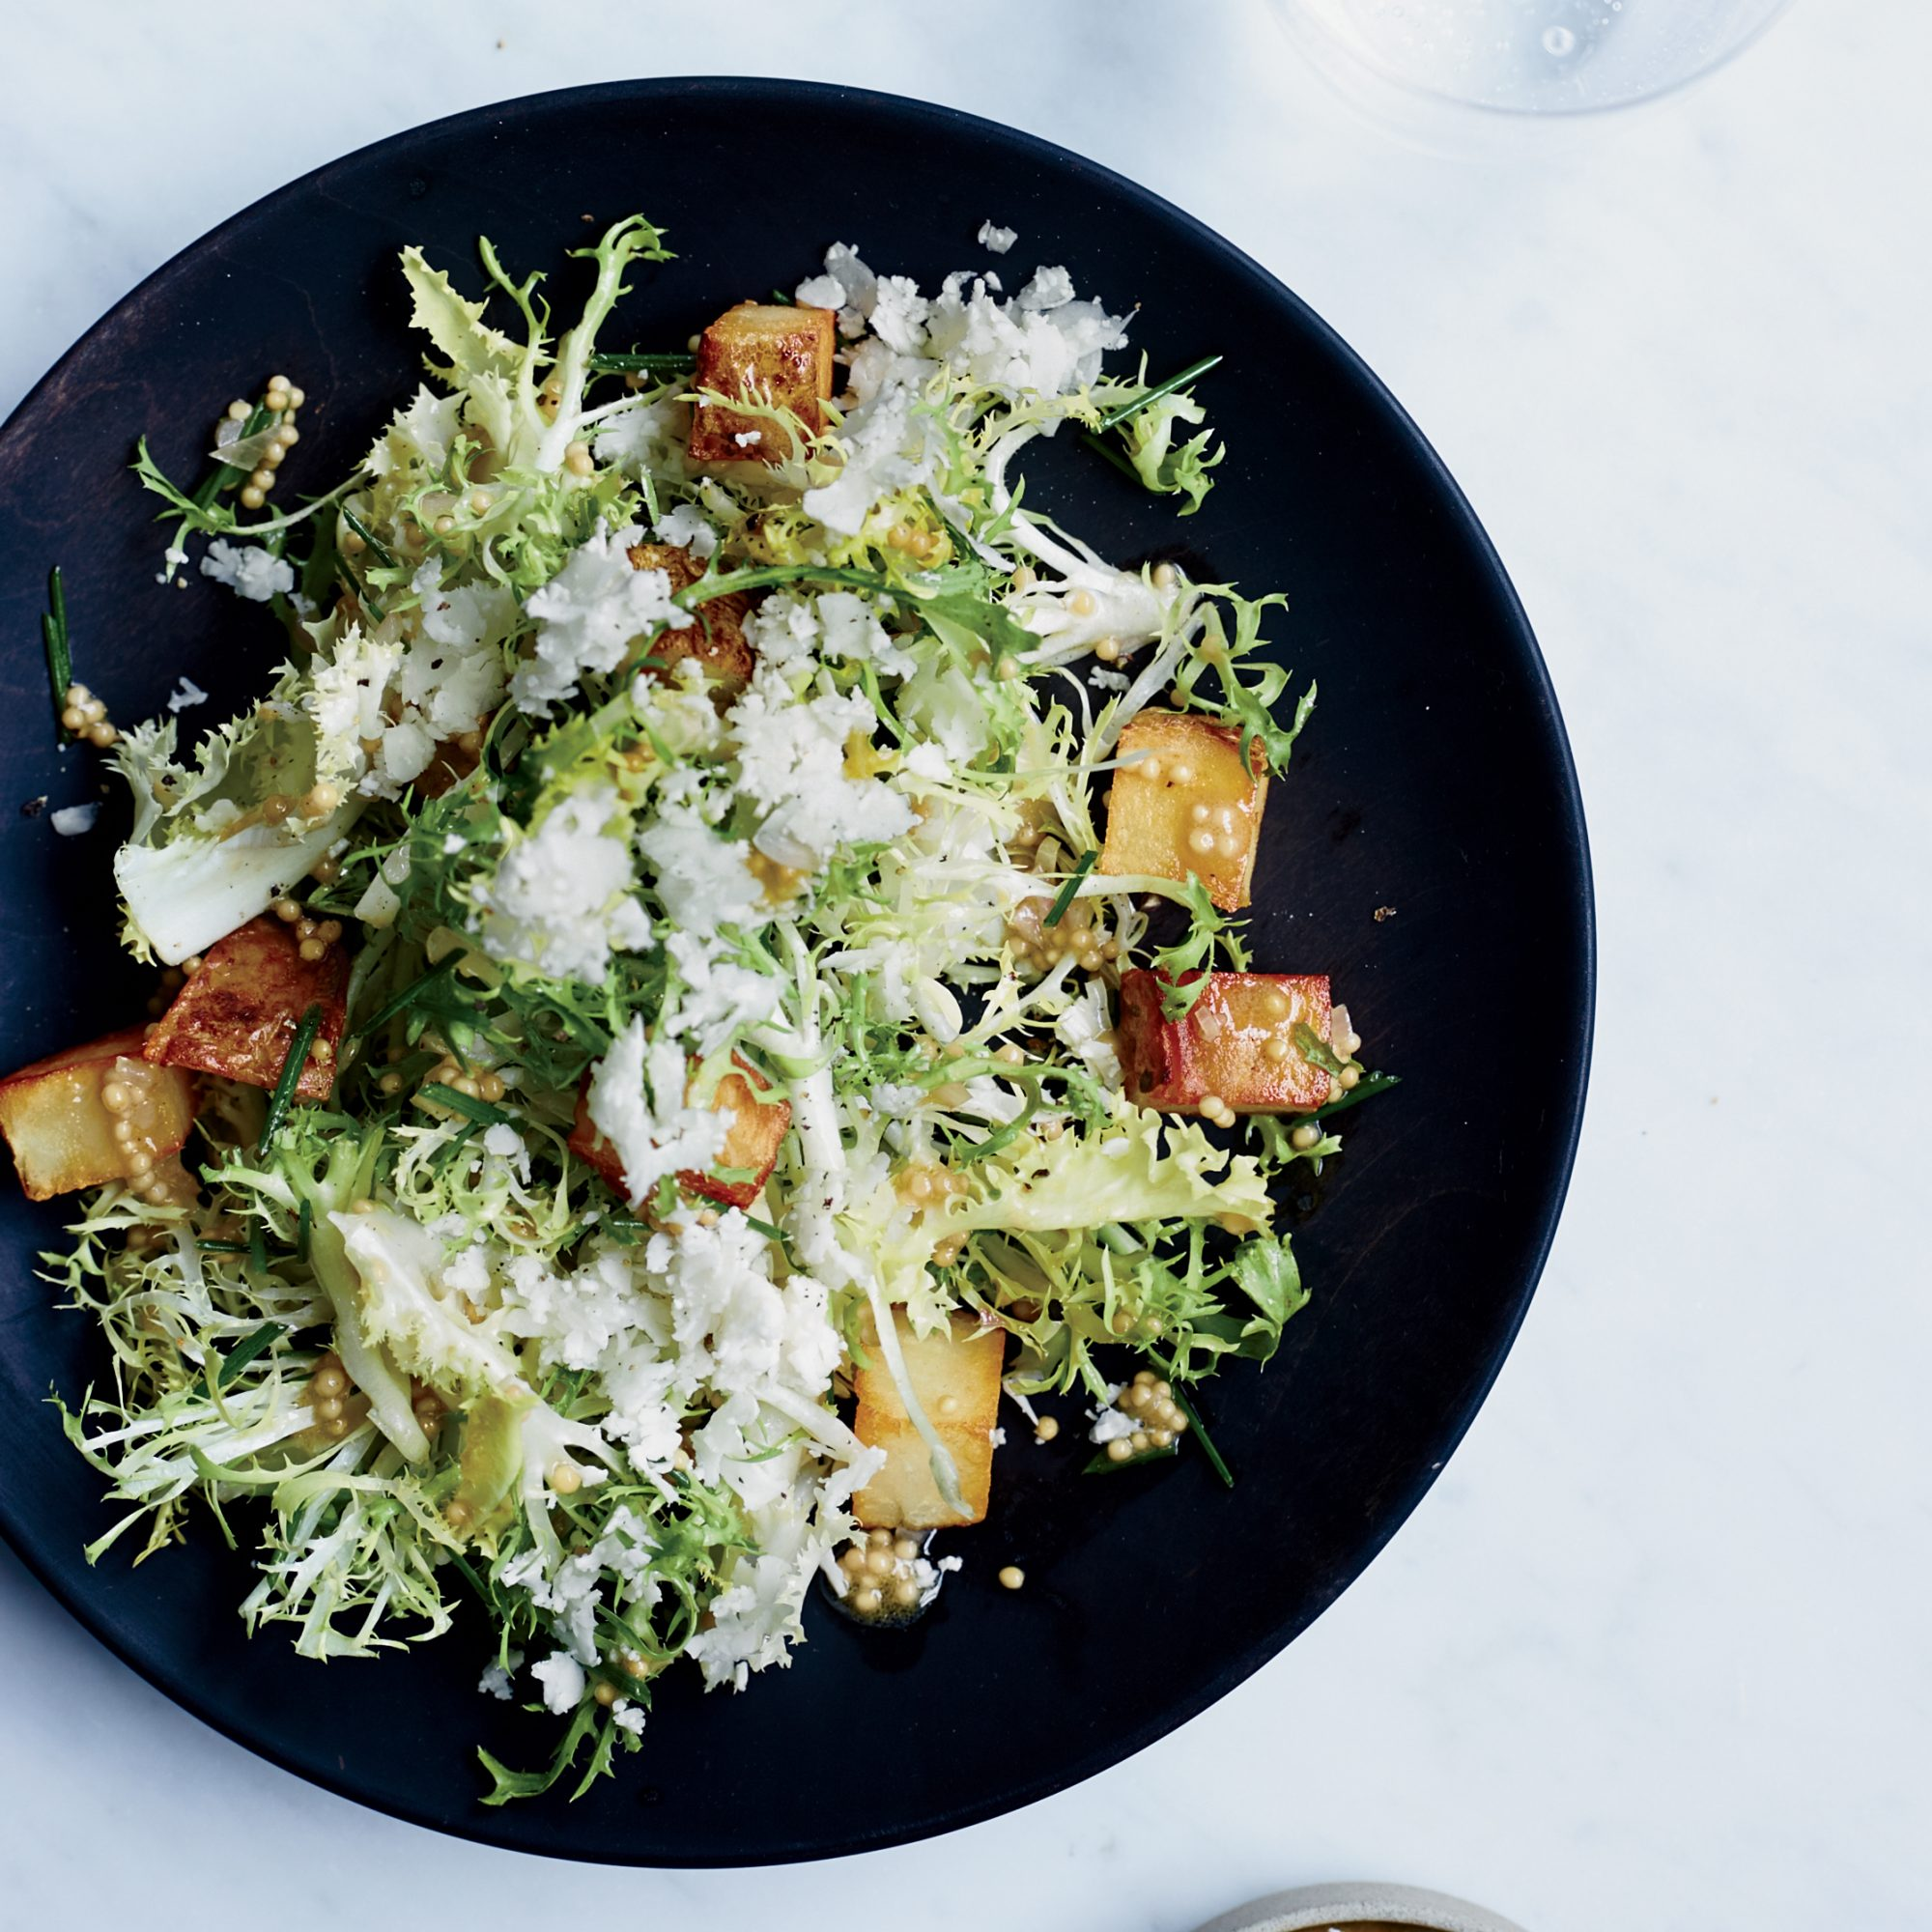 Frisée-and-Potato Salad